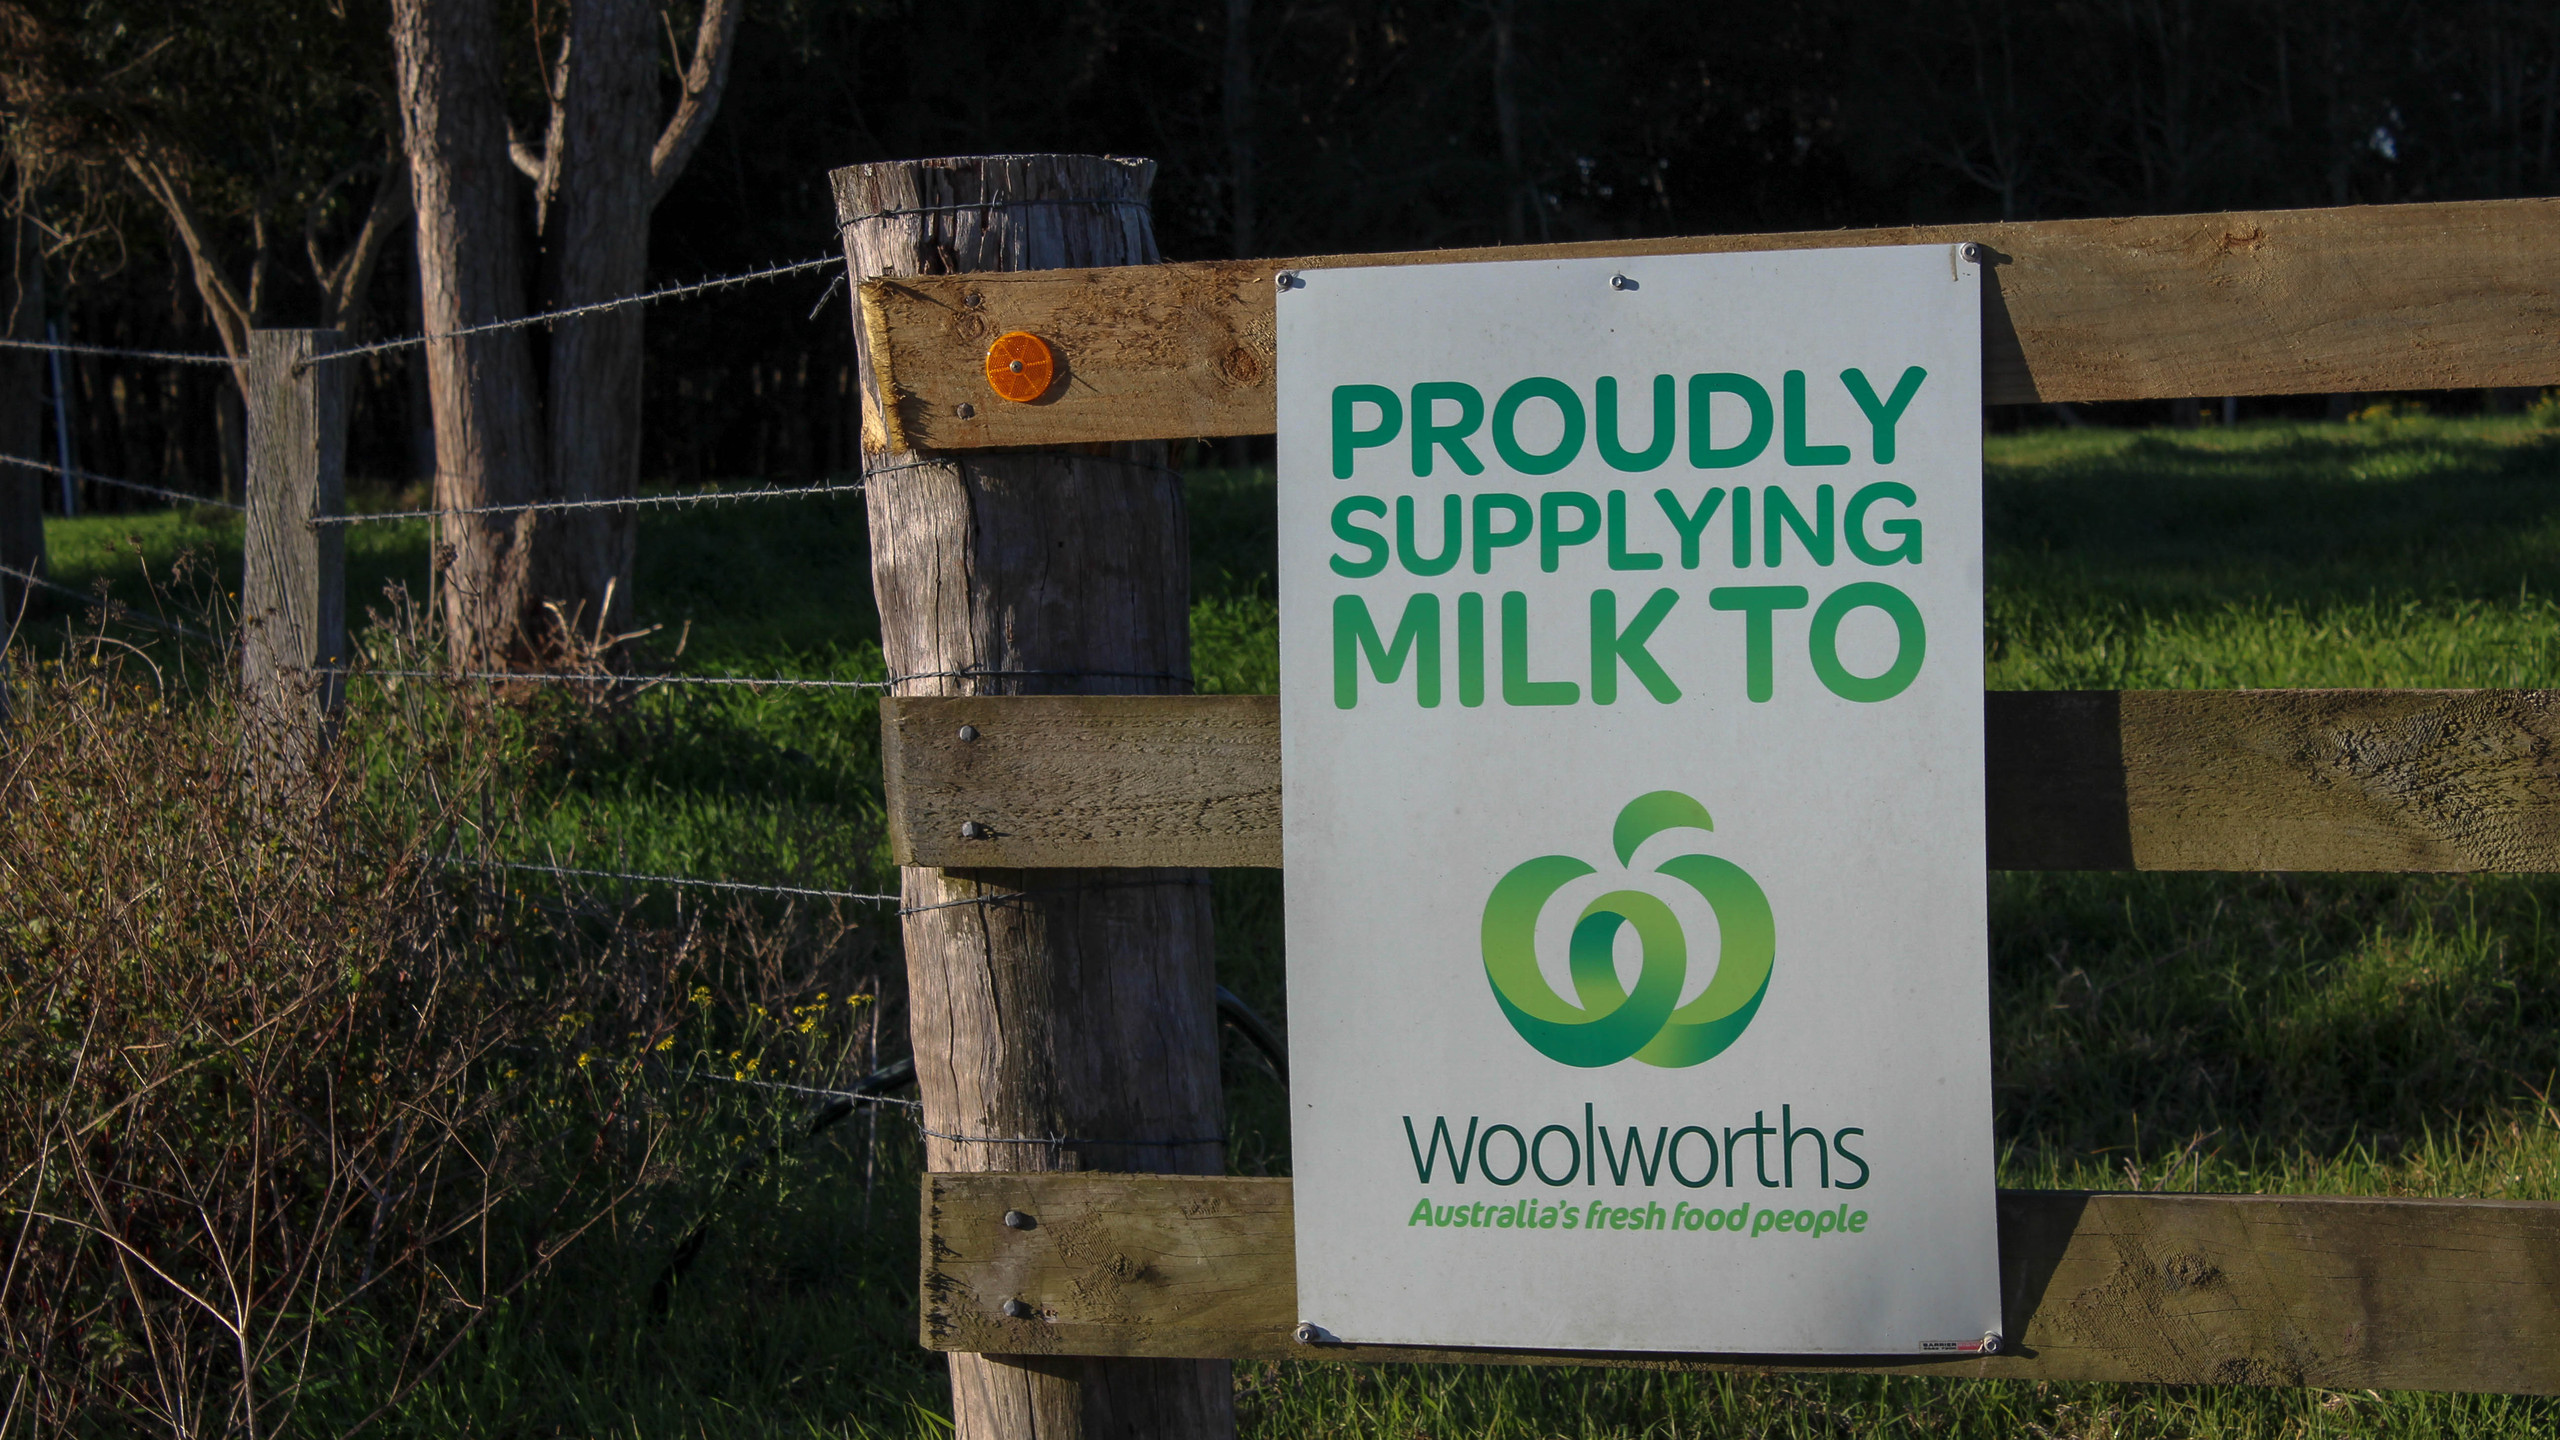 Supplying milk directly to Woolworths.